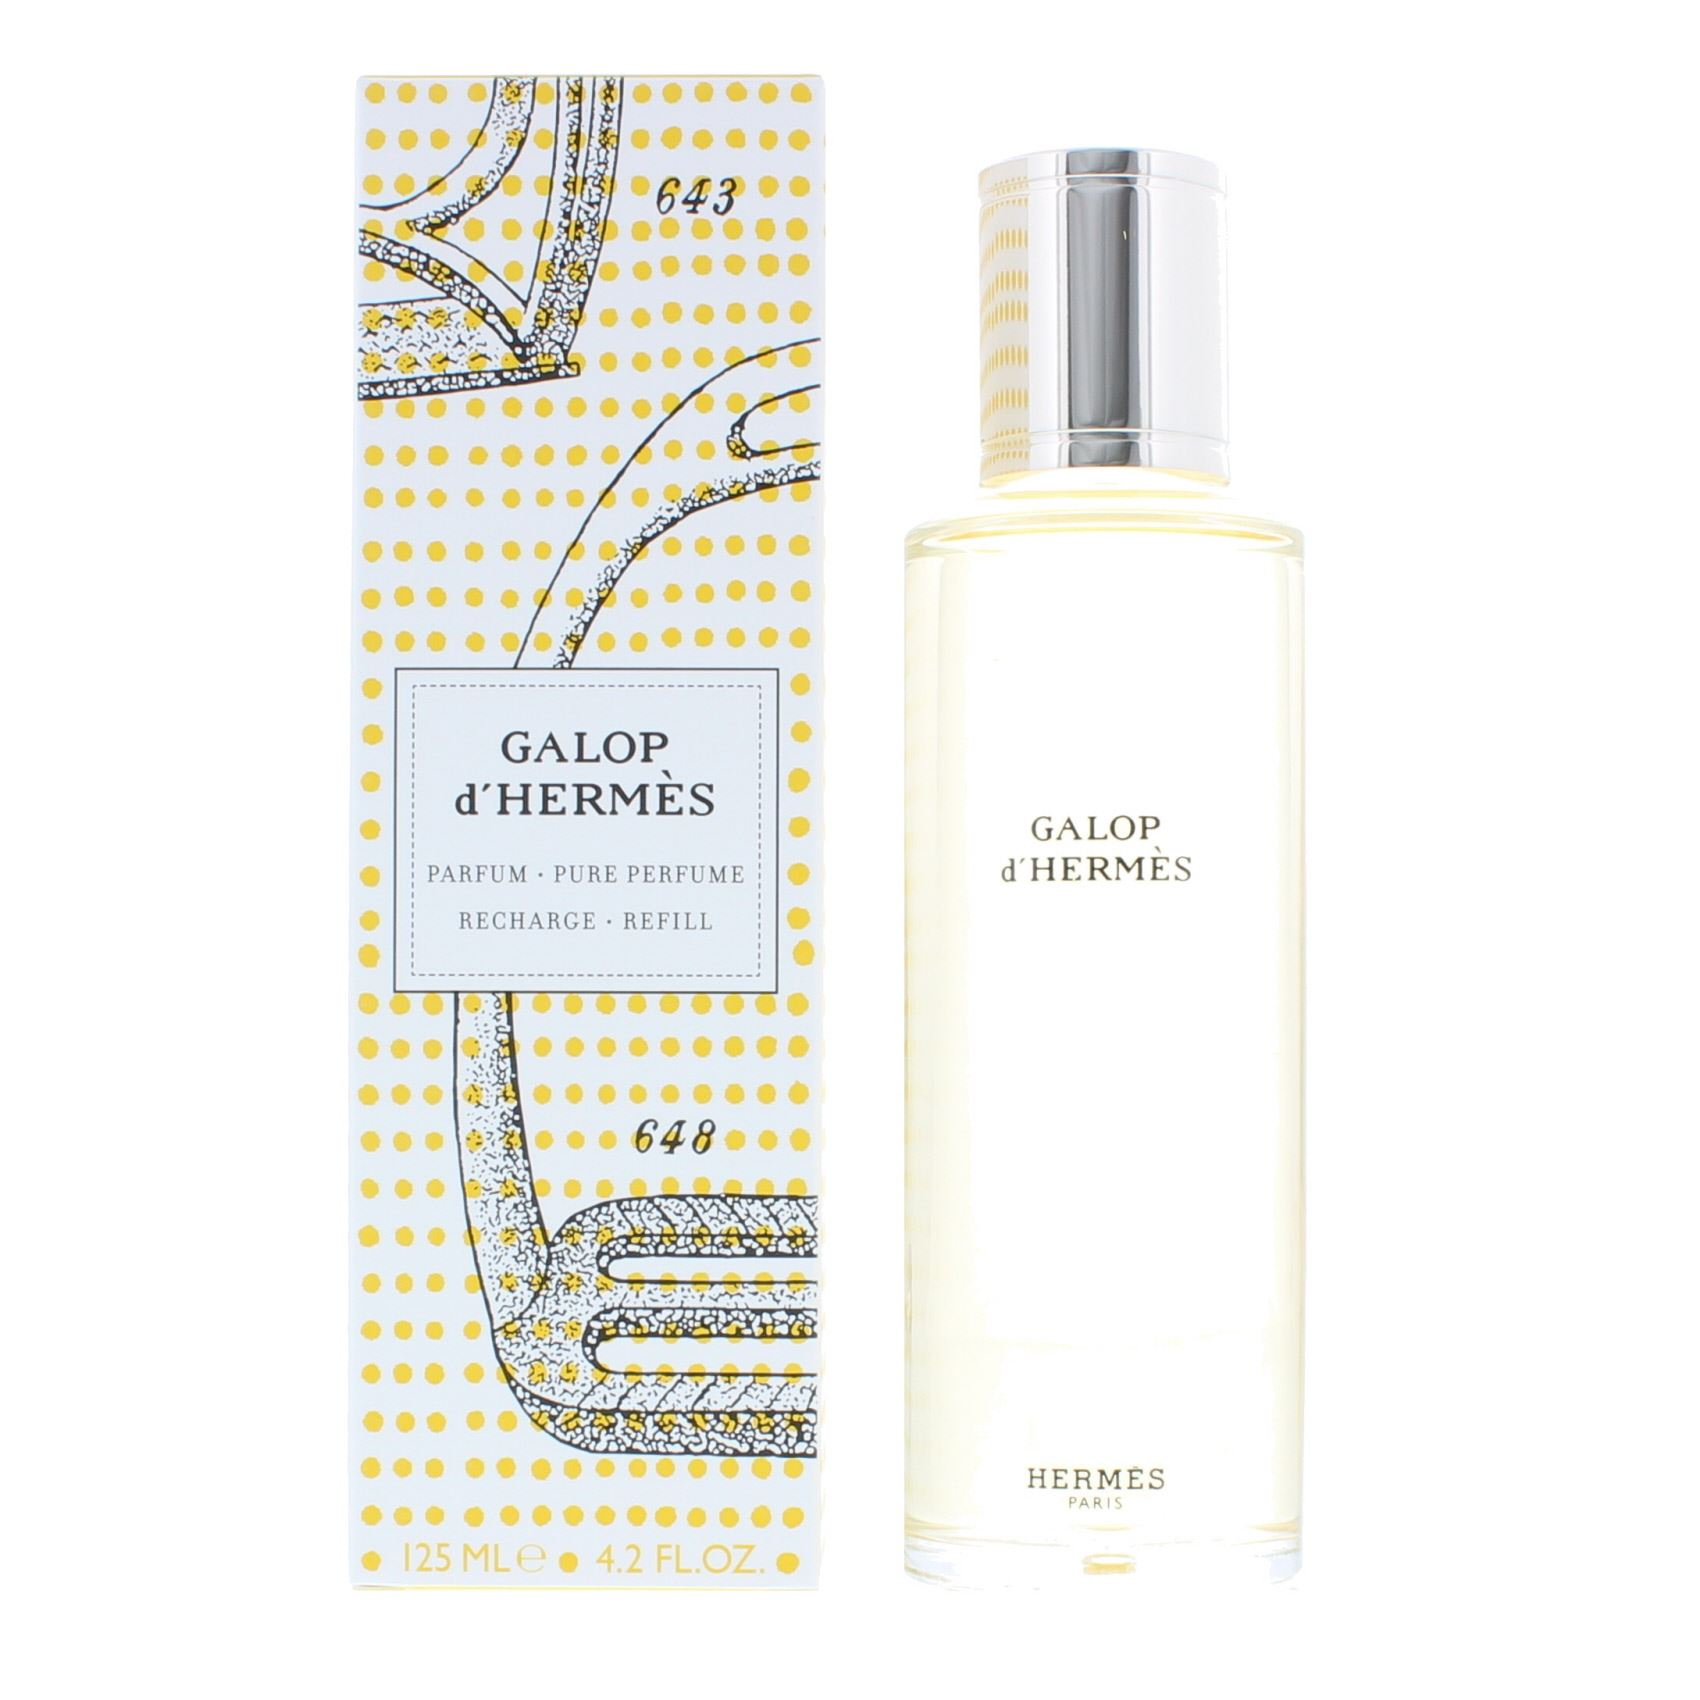 Details Pure Parfum Refill About Hermes For Perfume 125ml D'hermes Her Galop NewWomen's 0wPnk8O